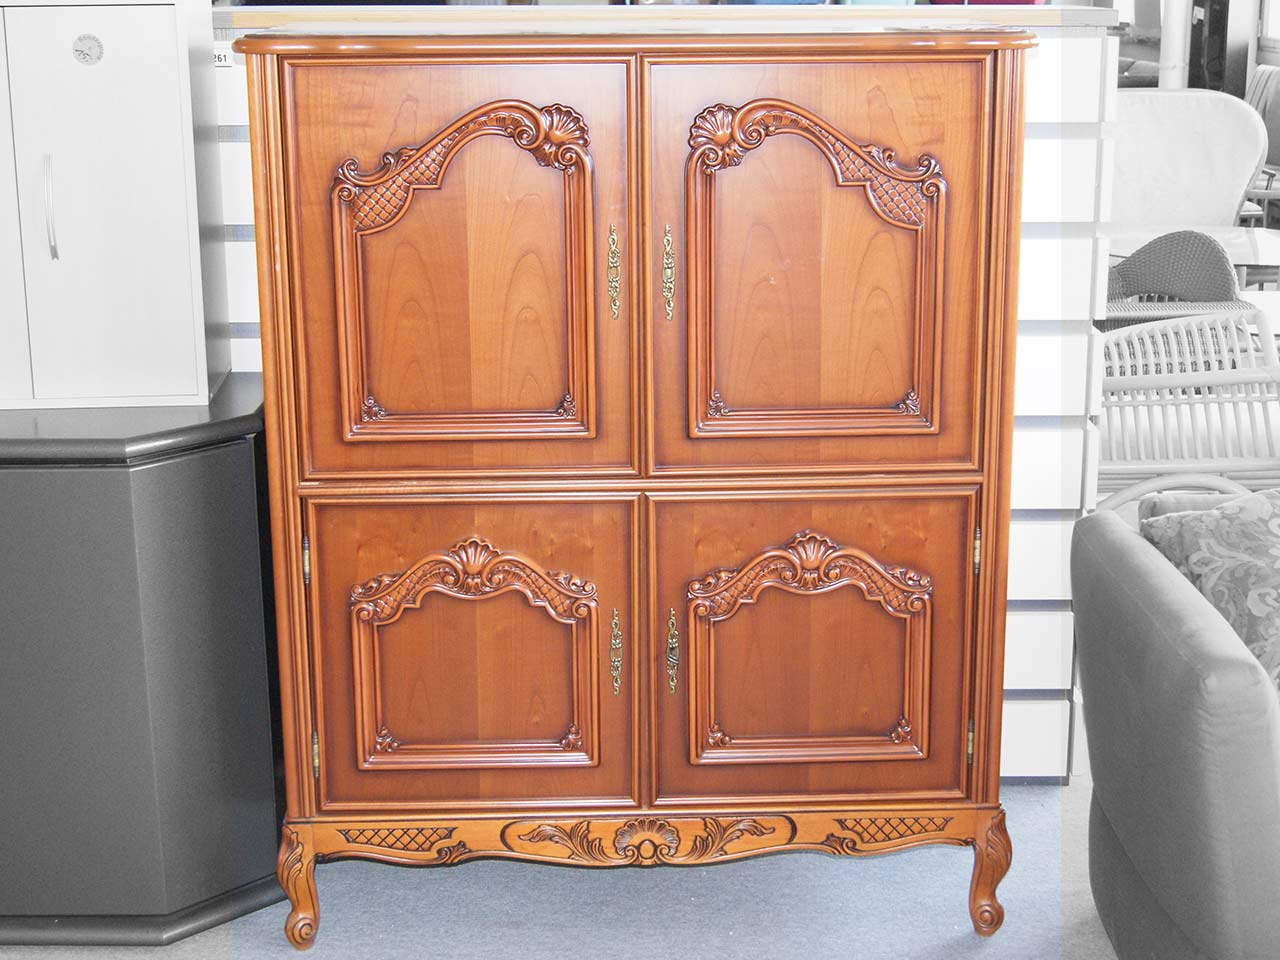 fernsehschrank tv schrank kirsche chippendale echtholzfurnier teilmassiv ebay. Black Bedroom Furniture Sets. Home Design Ideas